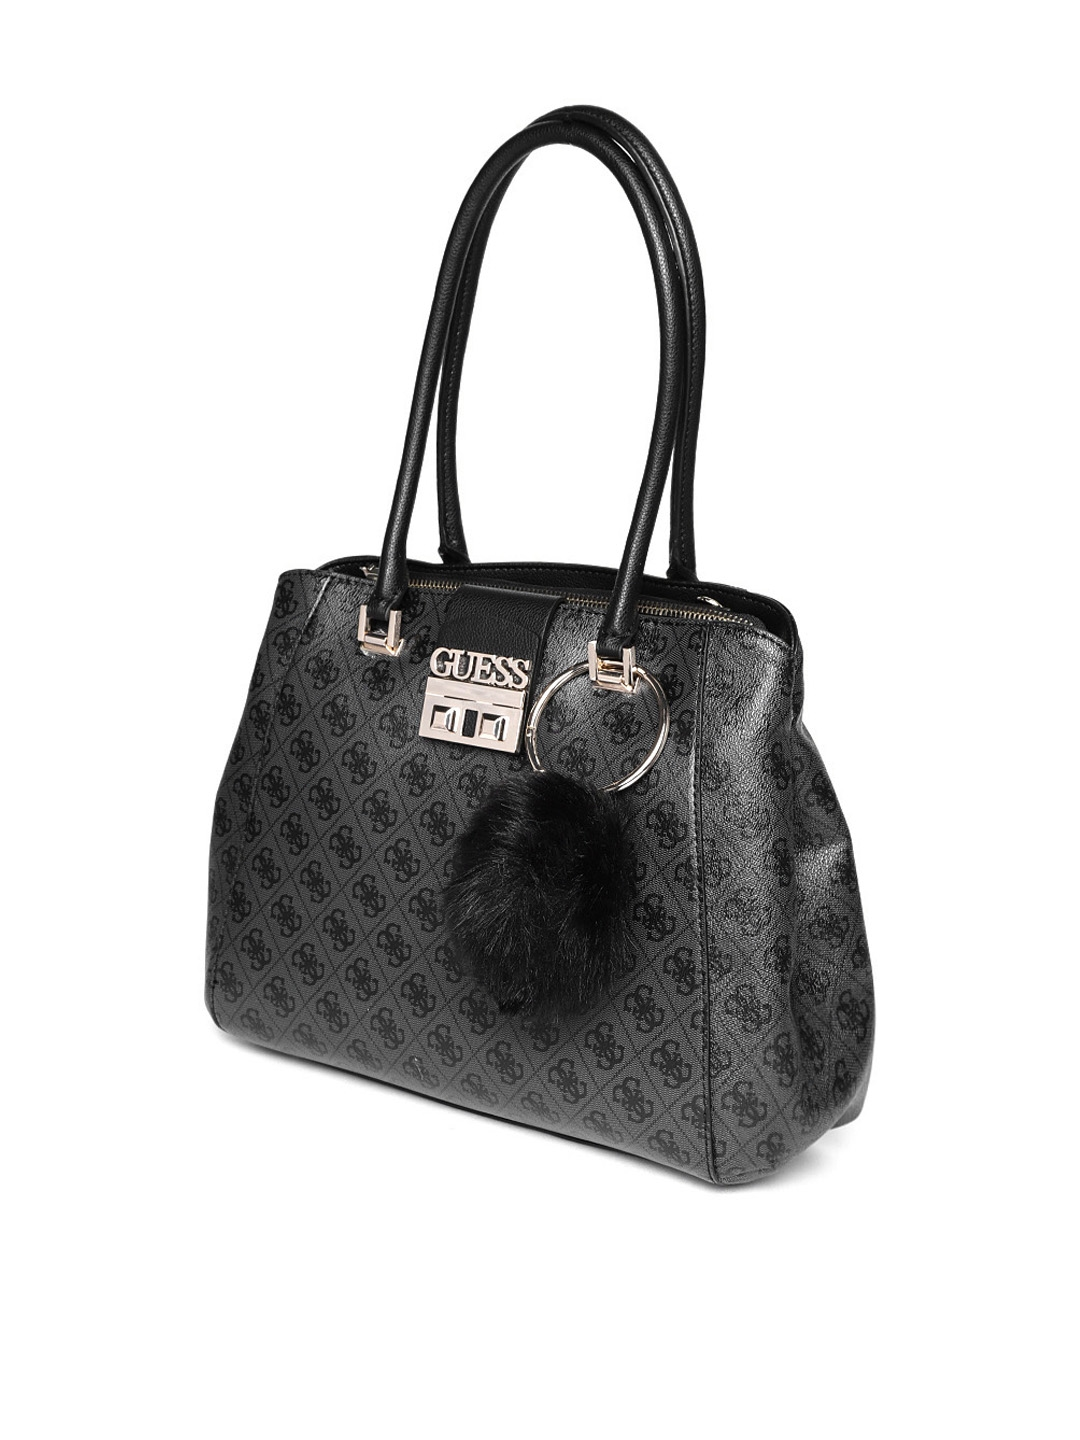 Buy GUESS Black Printed Shoulder Bag - Handbags for Women 8113111 ... bc794d065e067